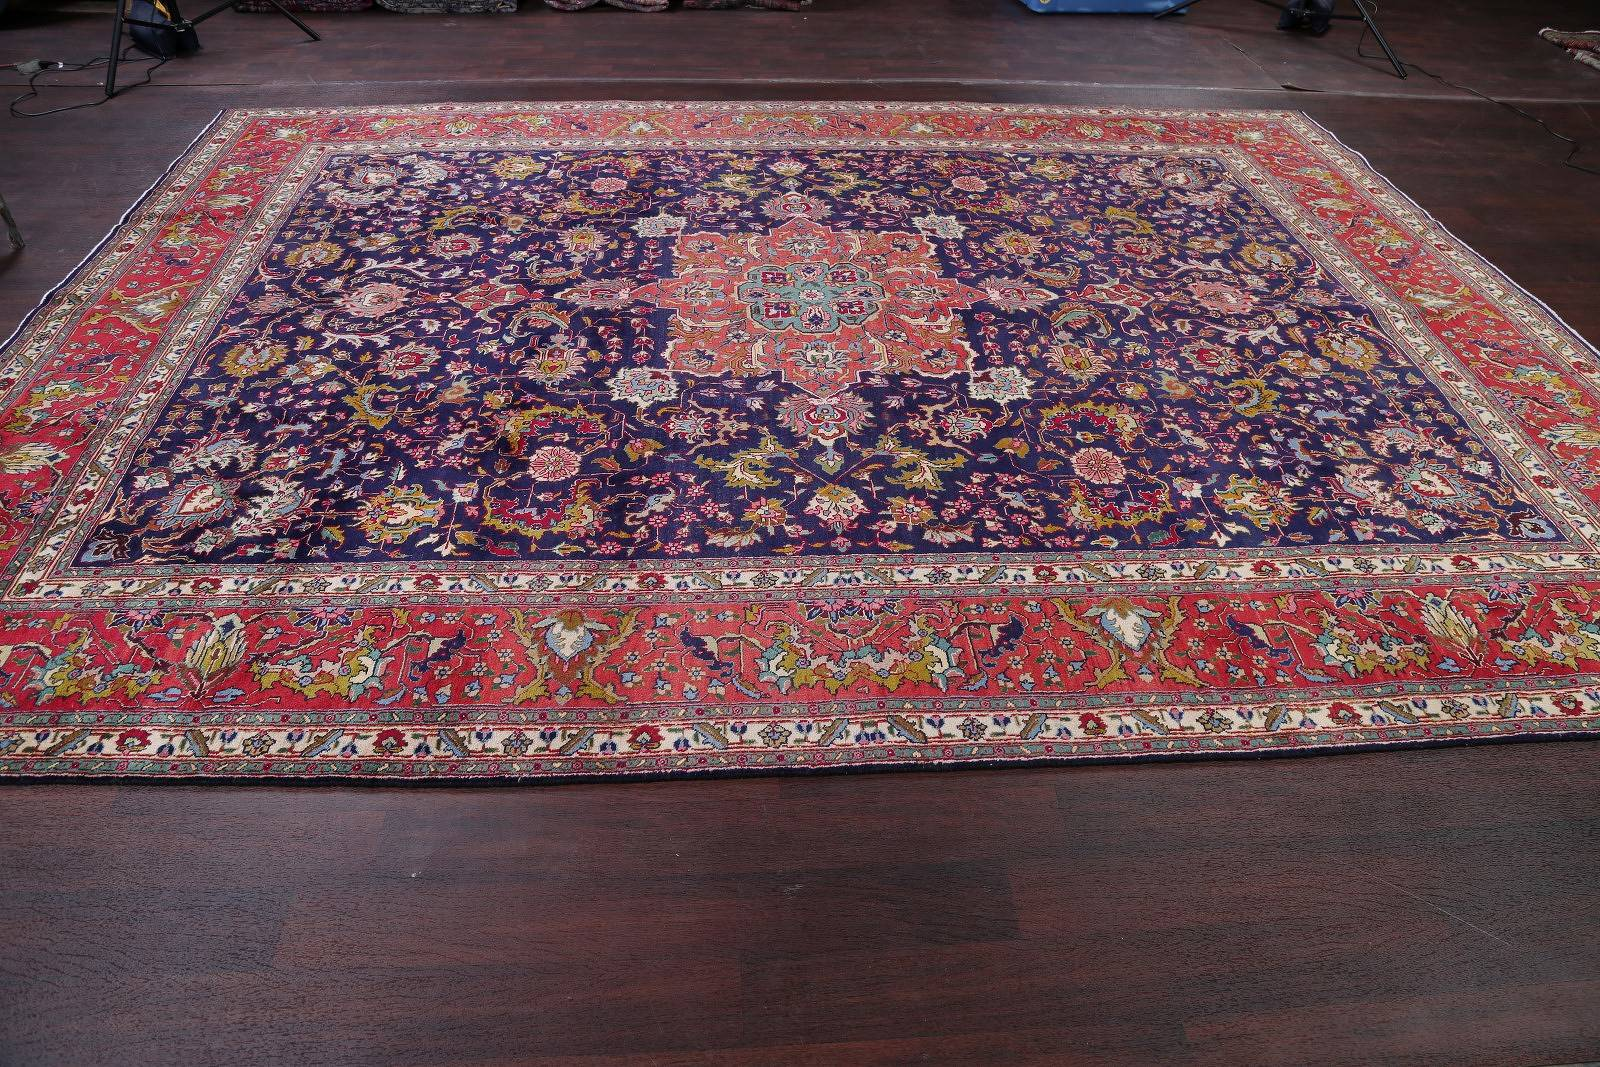 One-of-a-Kind Floral Navy Blue Tabriz Persian Hand-Knotted 10x13 Wool Area Rug